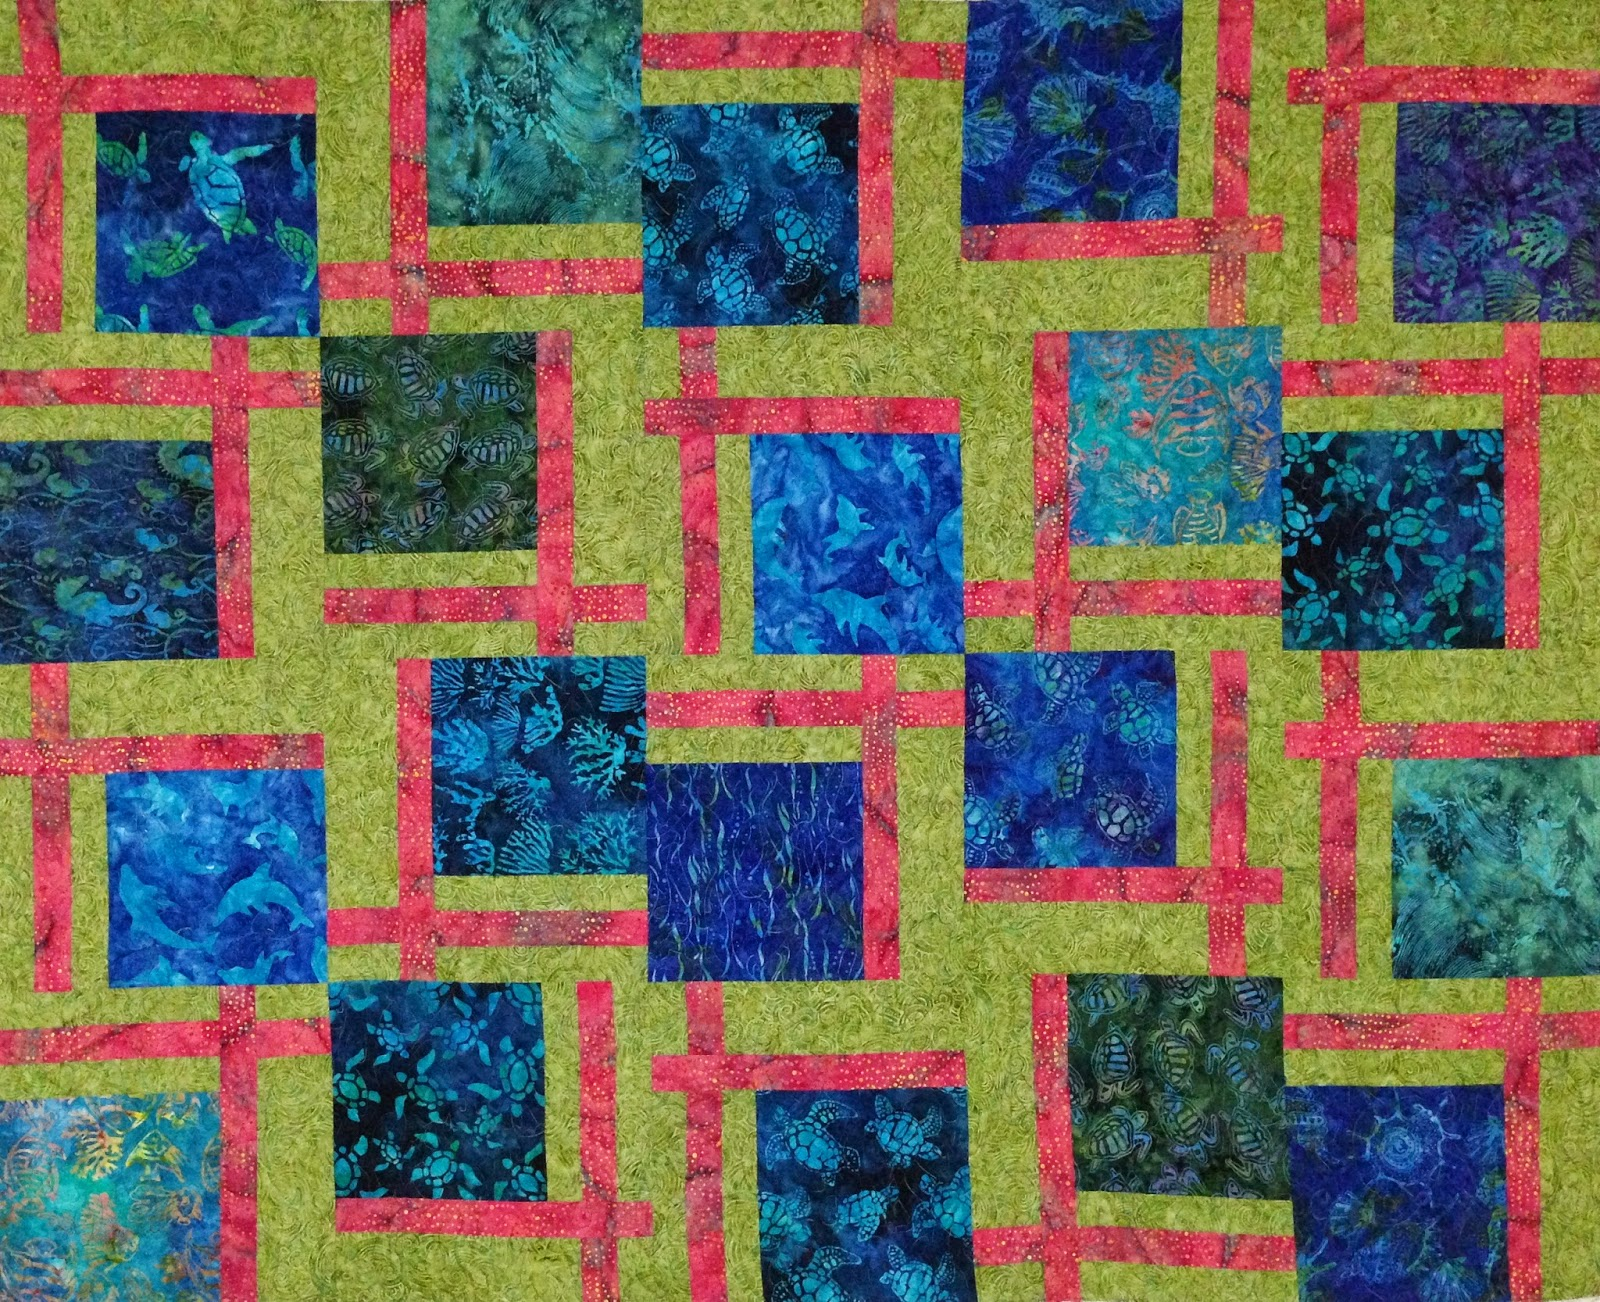 Kristi Dowding's Turtles in the Sea Quilt